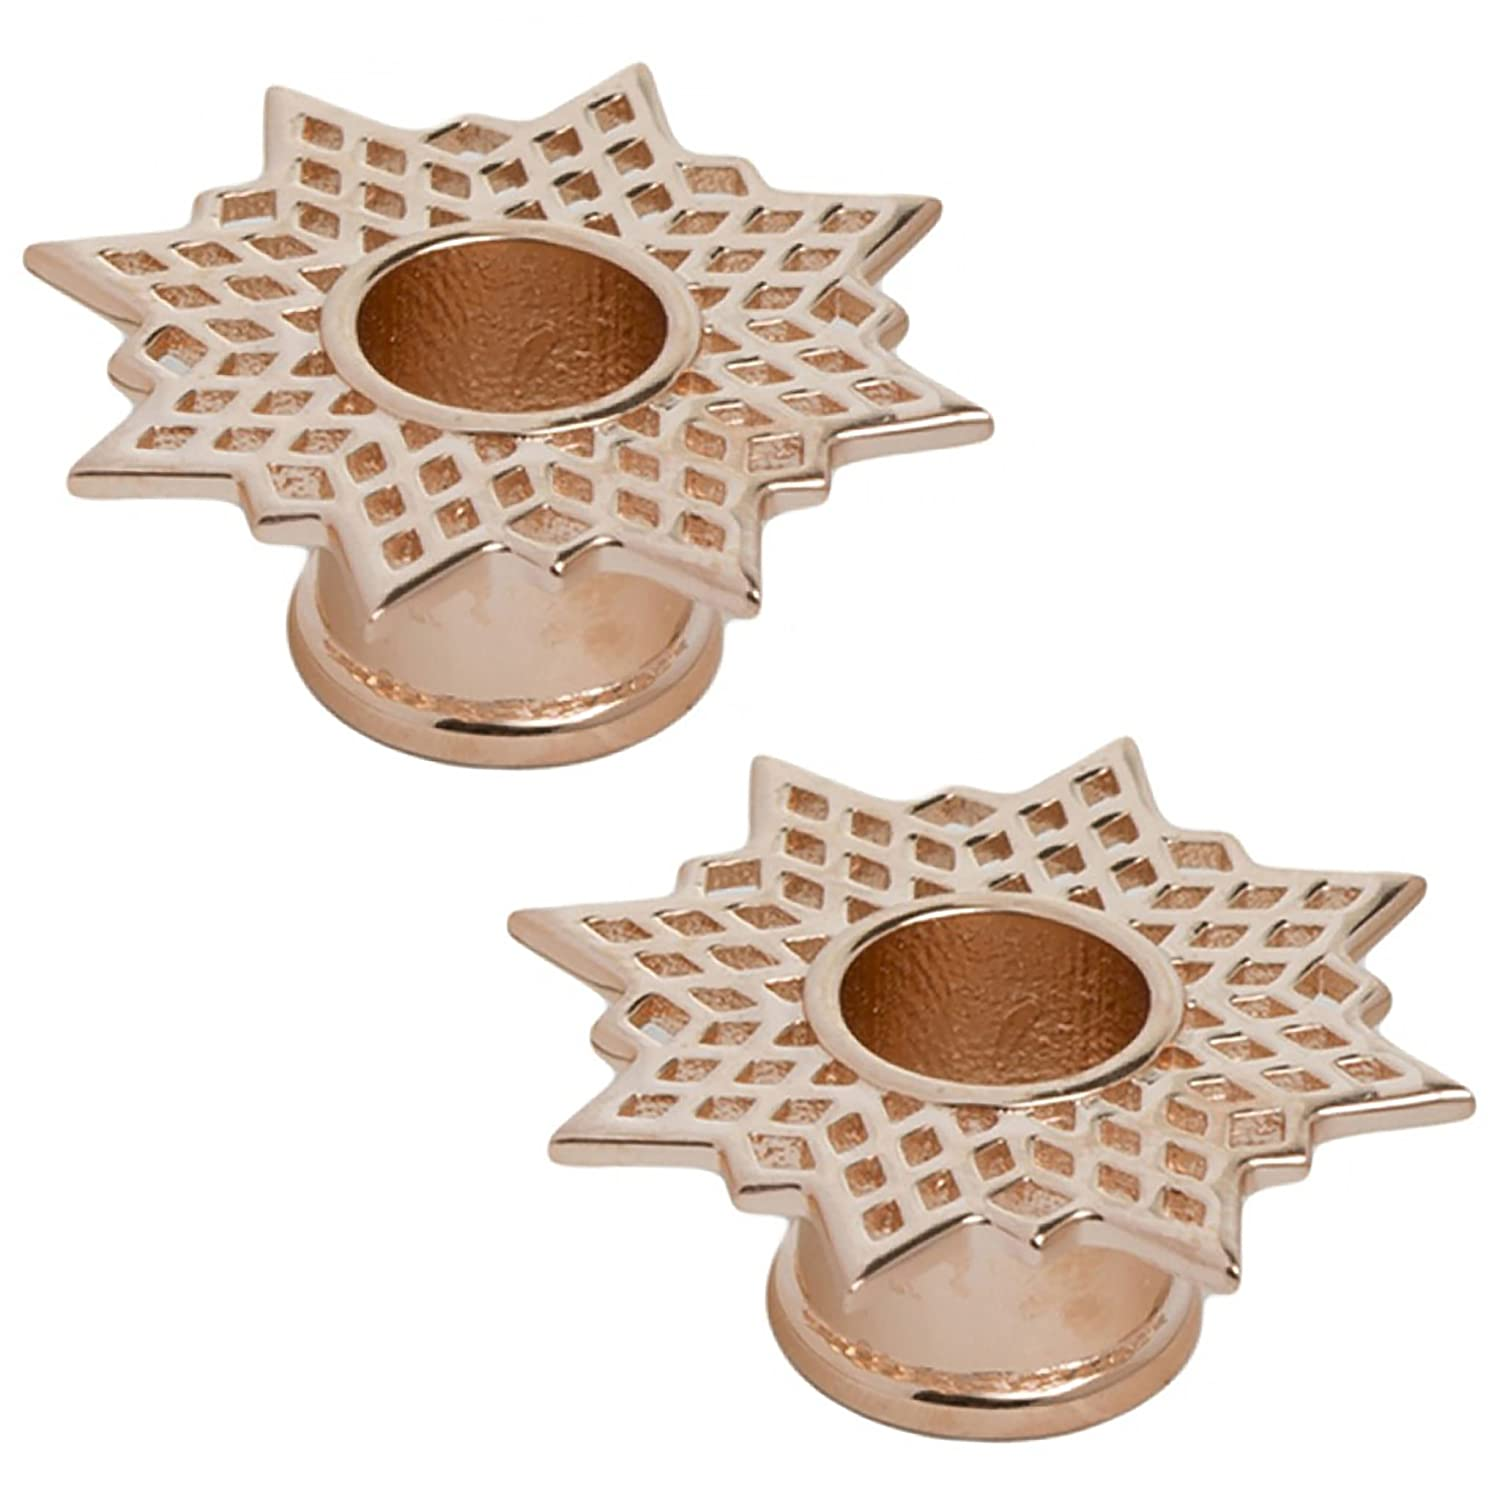 4g Tawapa 56-PAIR-RGP31-4 Steel Navel Body Jewelry Pair of Rose Gold Plated Double Flared Supernova Eyelets